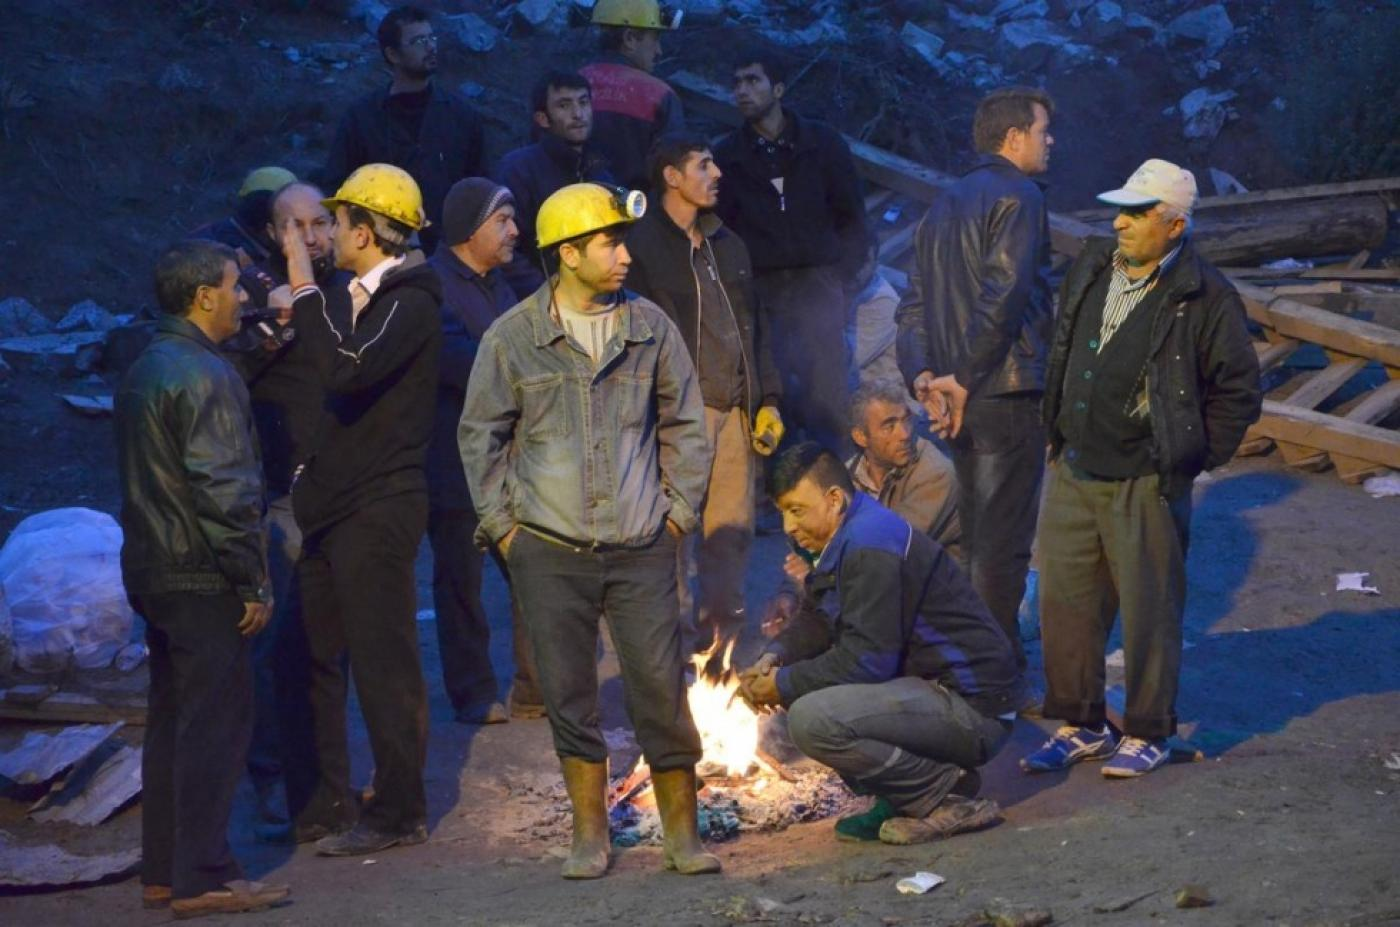 Turkey: 18 miners remain trapped inside flooded mine